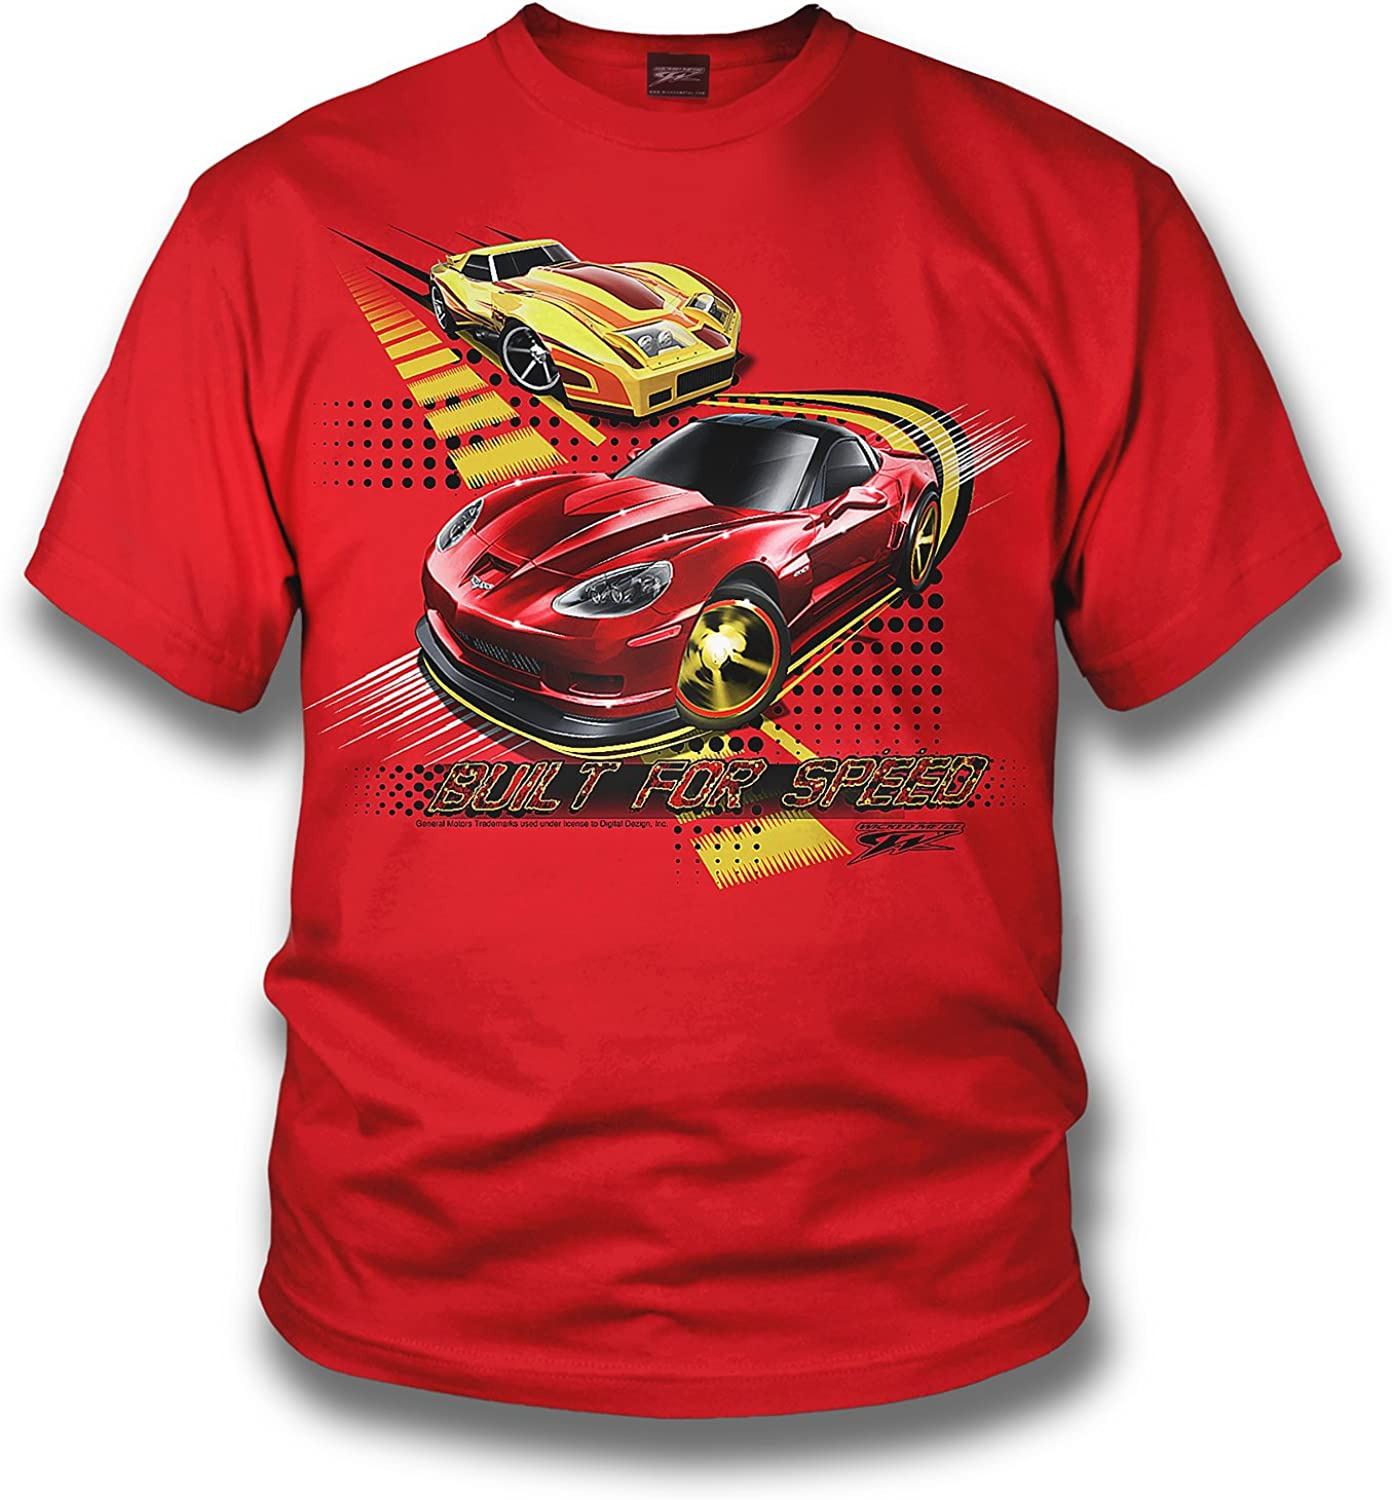 Wicked Metal Kids - Built for Speed Corvette - Red